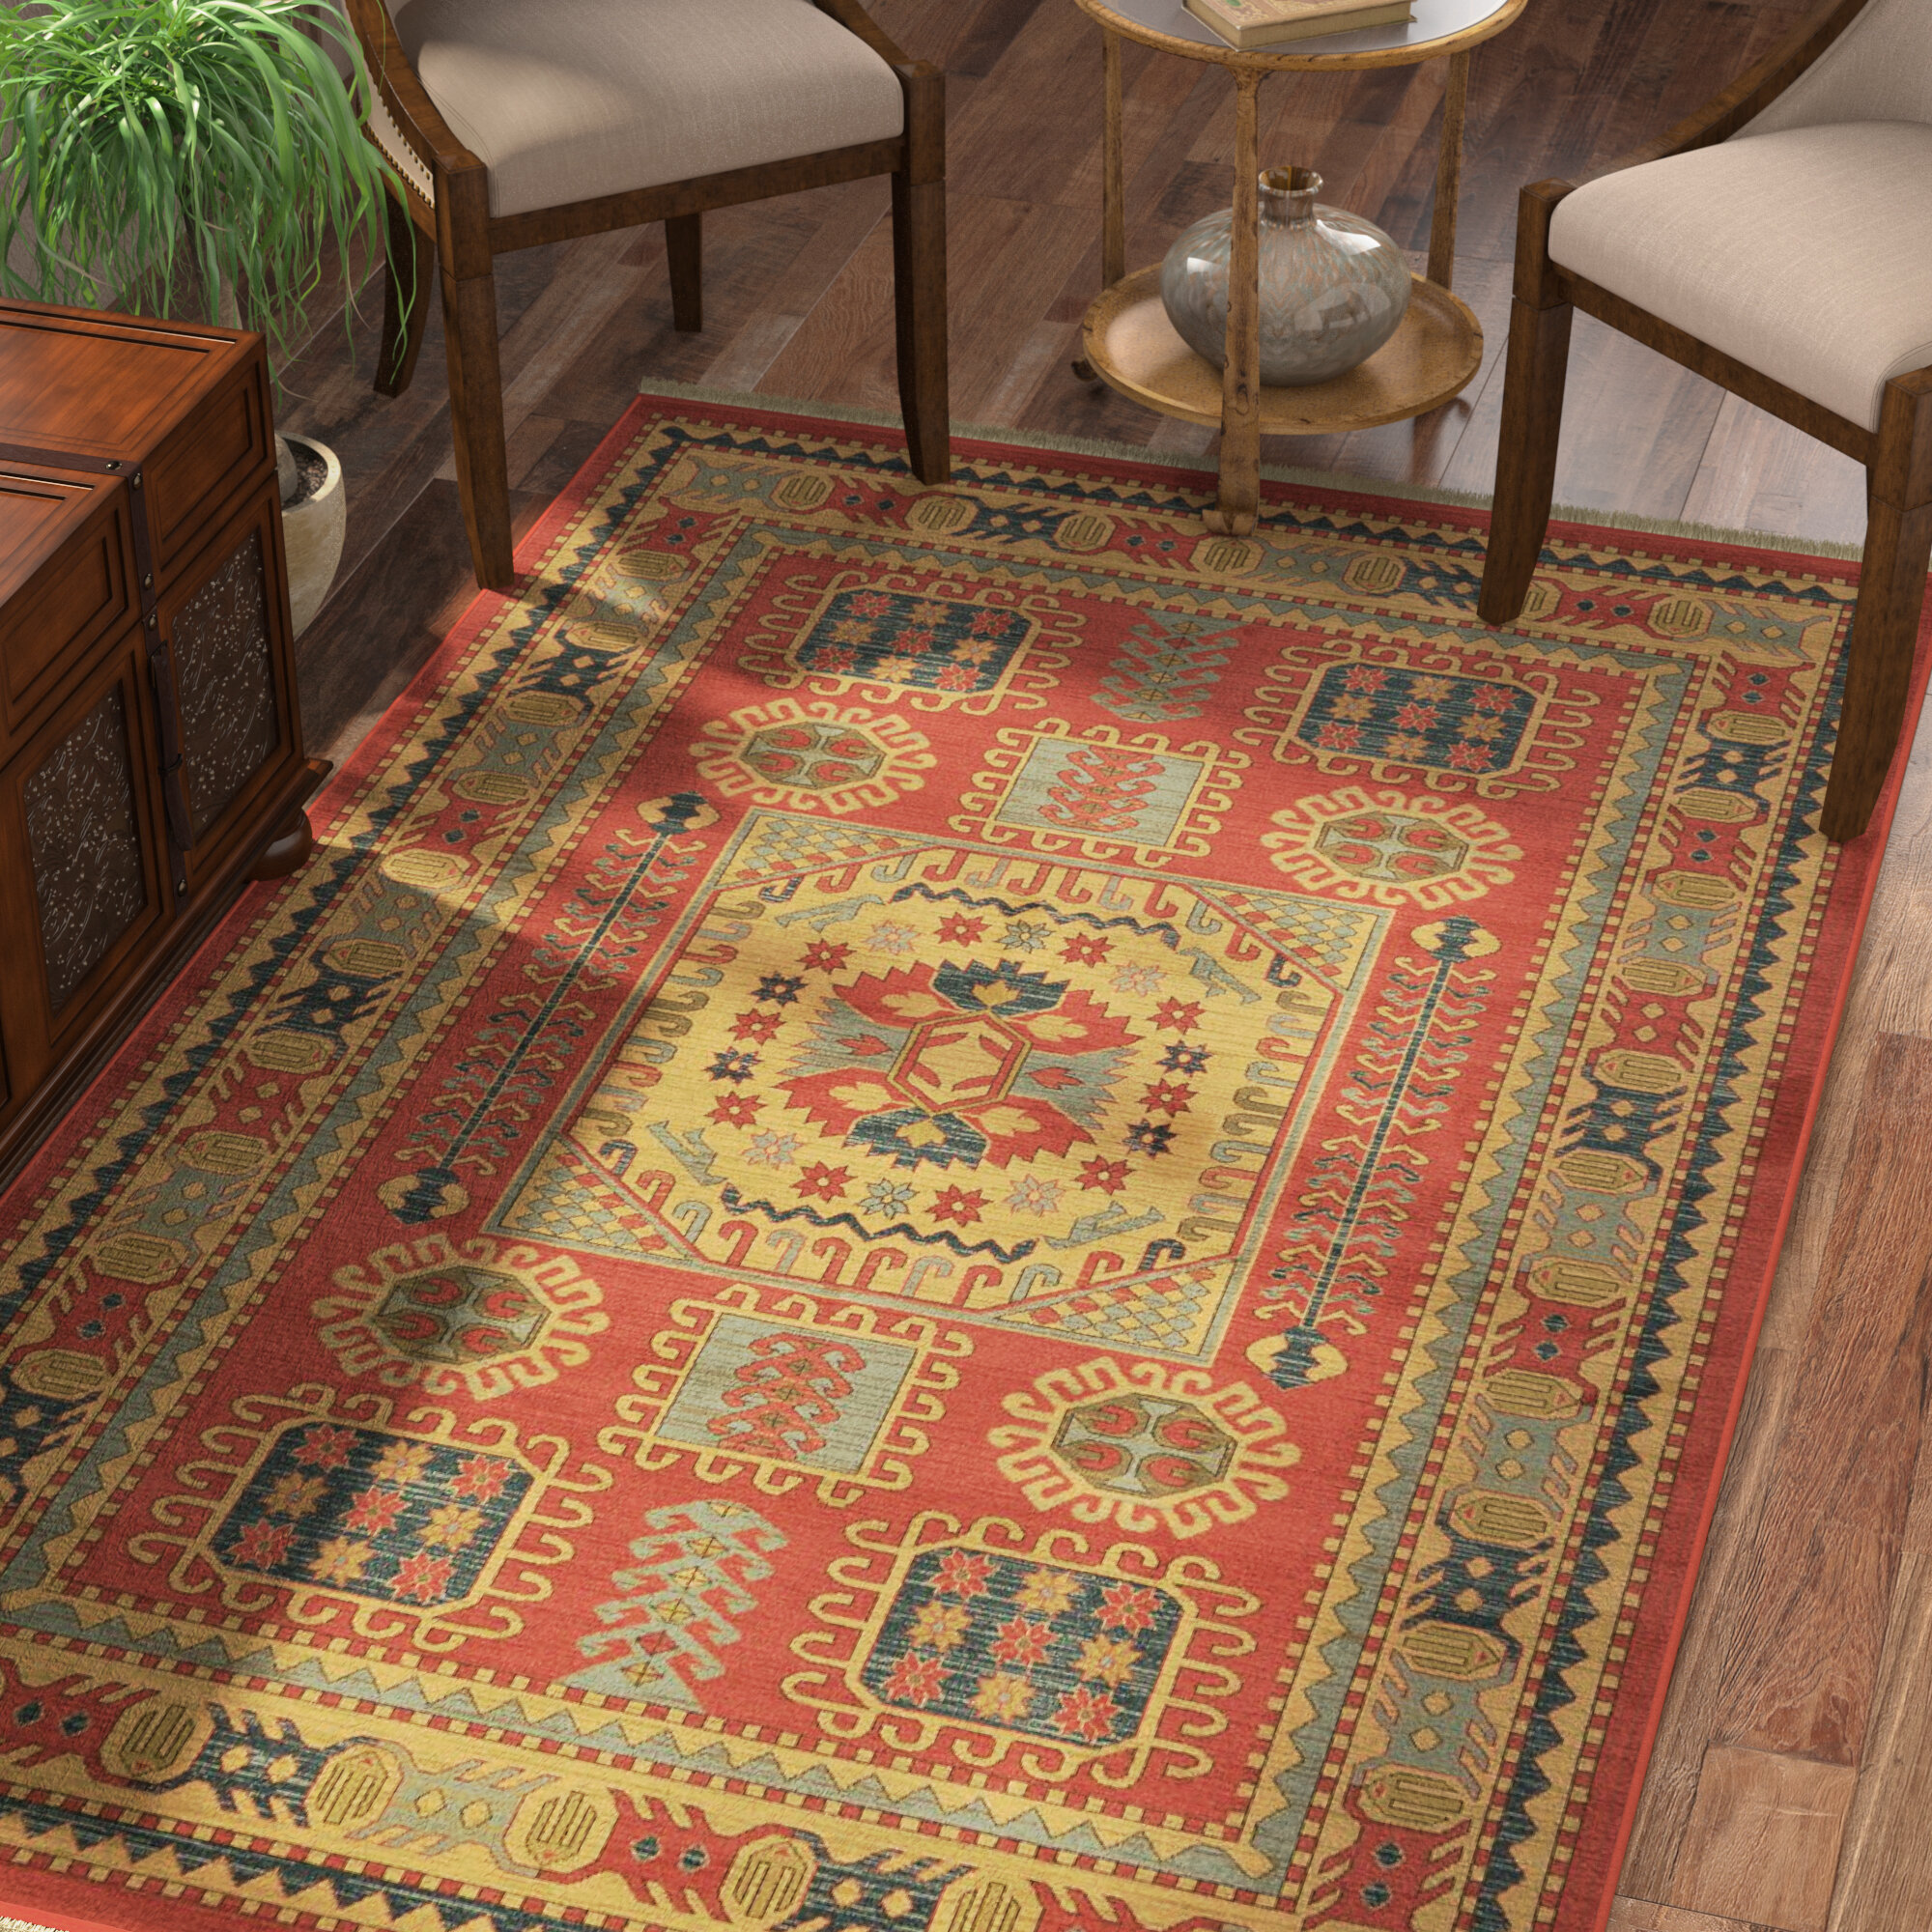 purchase rug main mainrug rugs fifth our joss my and house new first a area